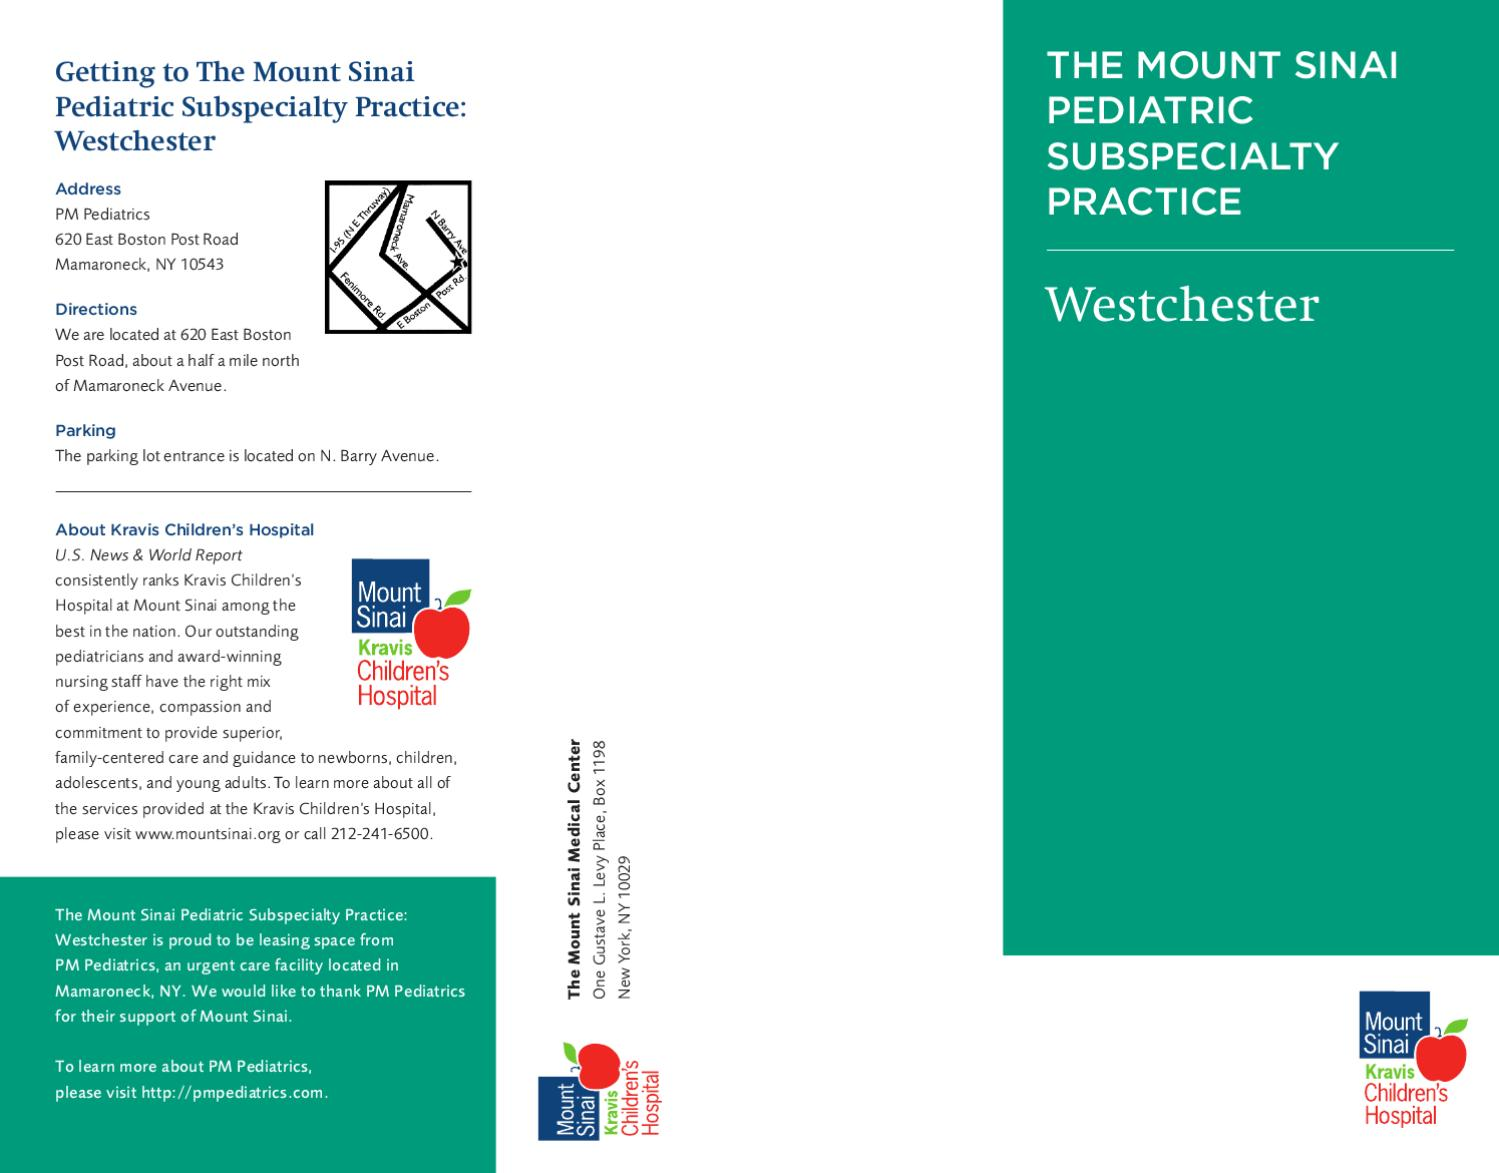 The Mount Sinai Pediatric Subspecialty Practice: Westchester